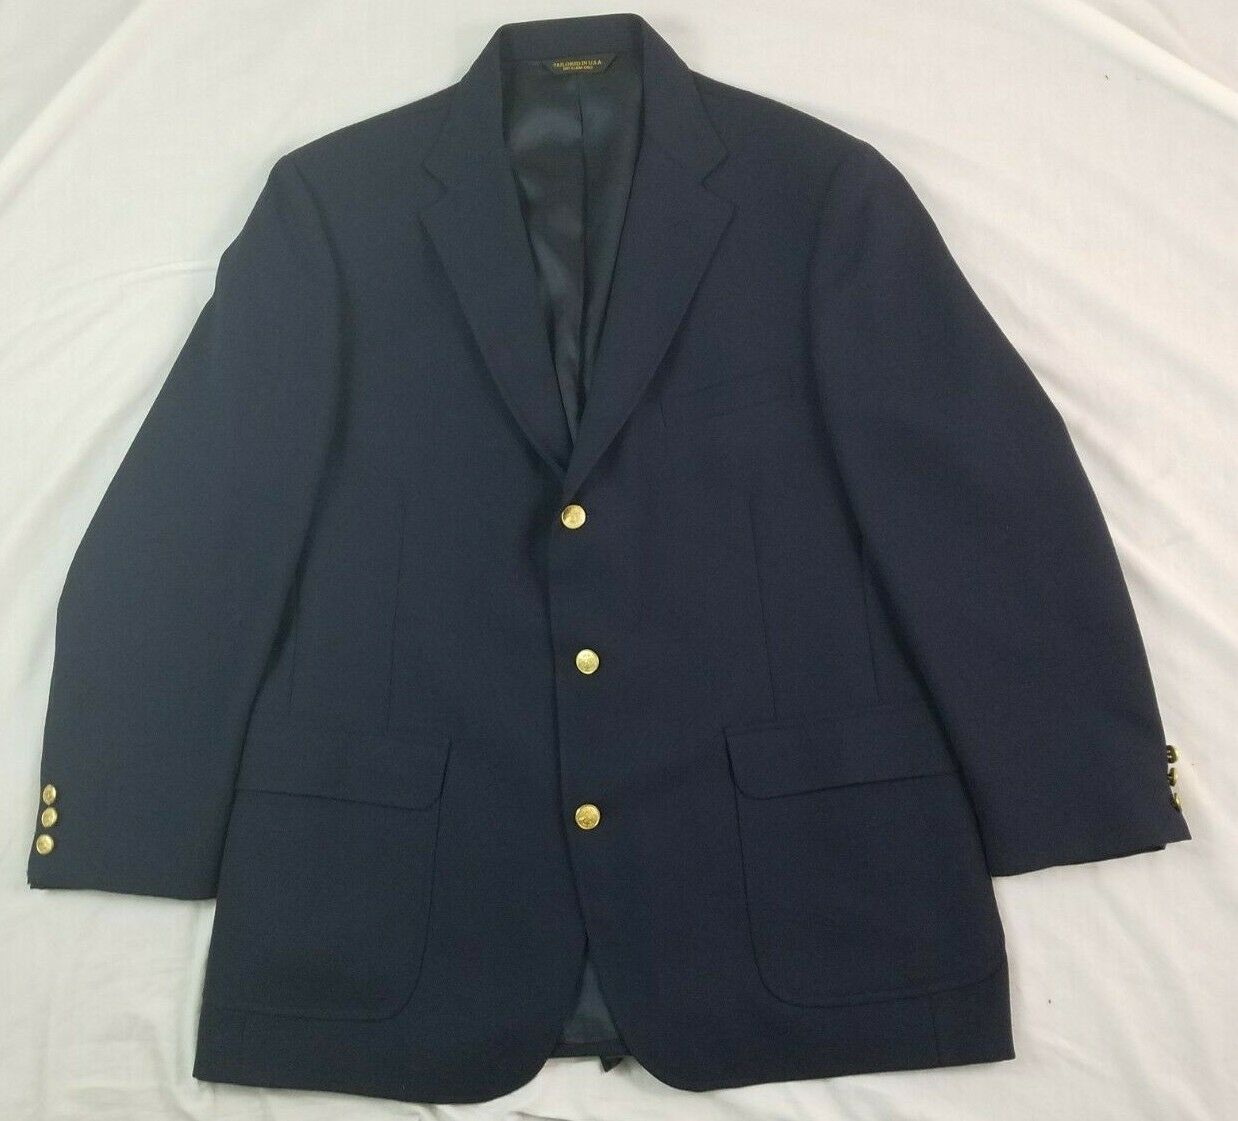 ORVIS Mens Blazer Sport Coat Navy bluee gold Buttons Vintage USA 100% Wool 46R